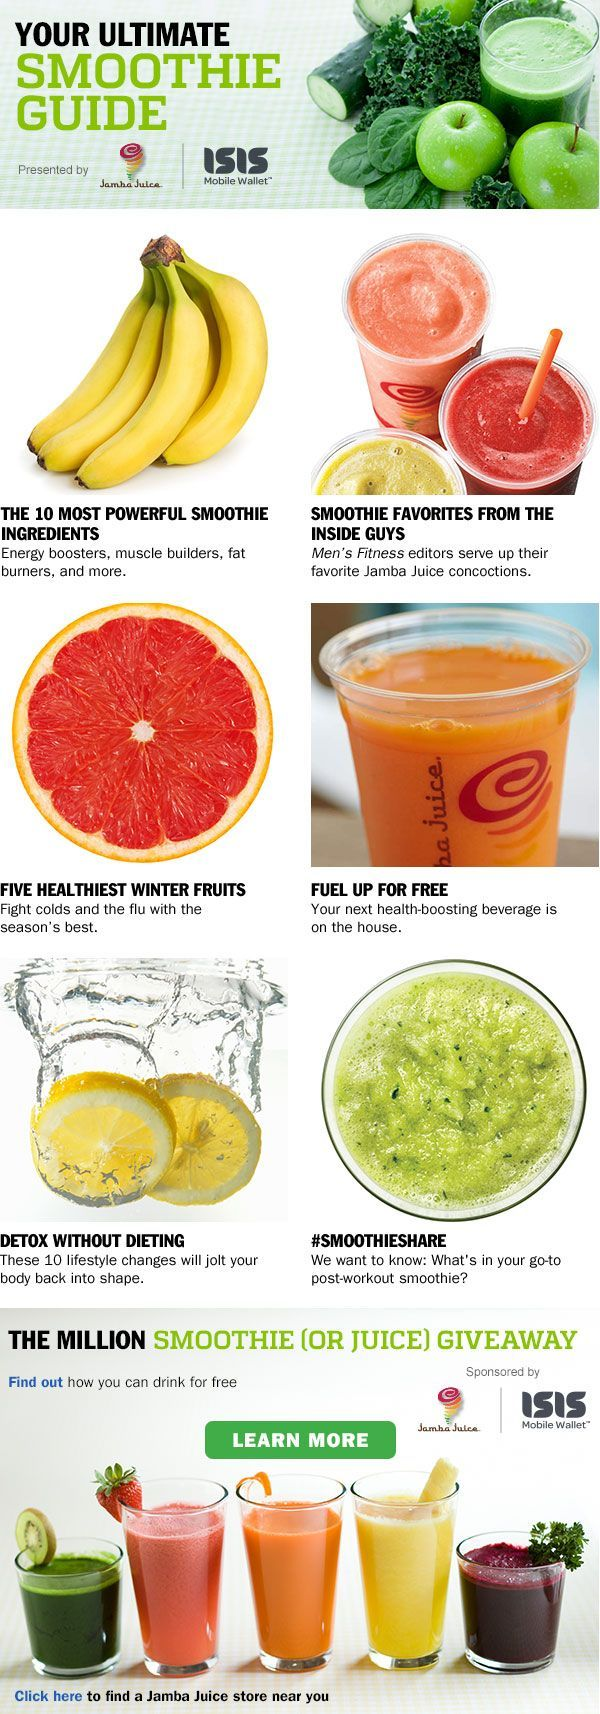 Your Ultimate Smoothie Guide - Men's Fitness http://healthnfitness24.com/